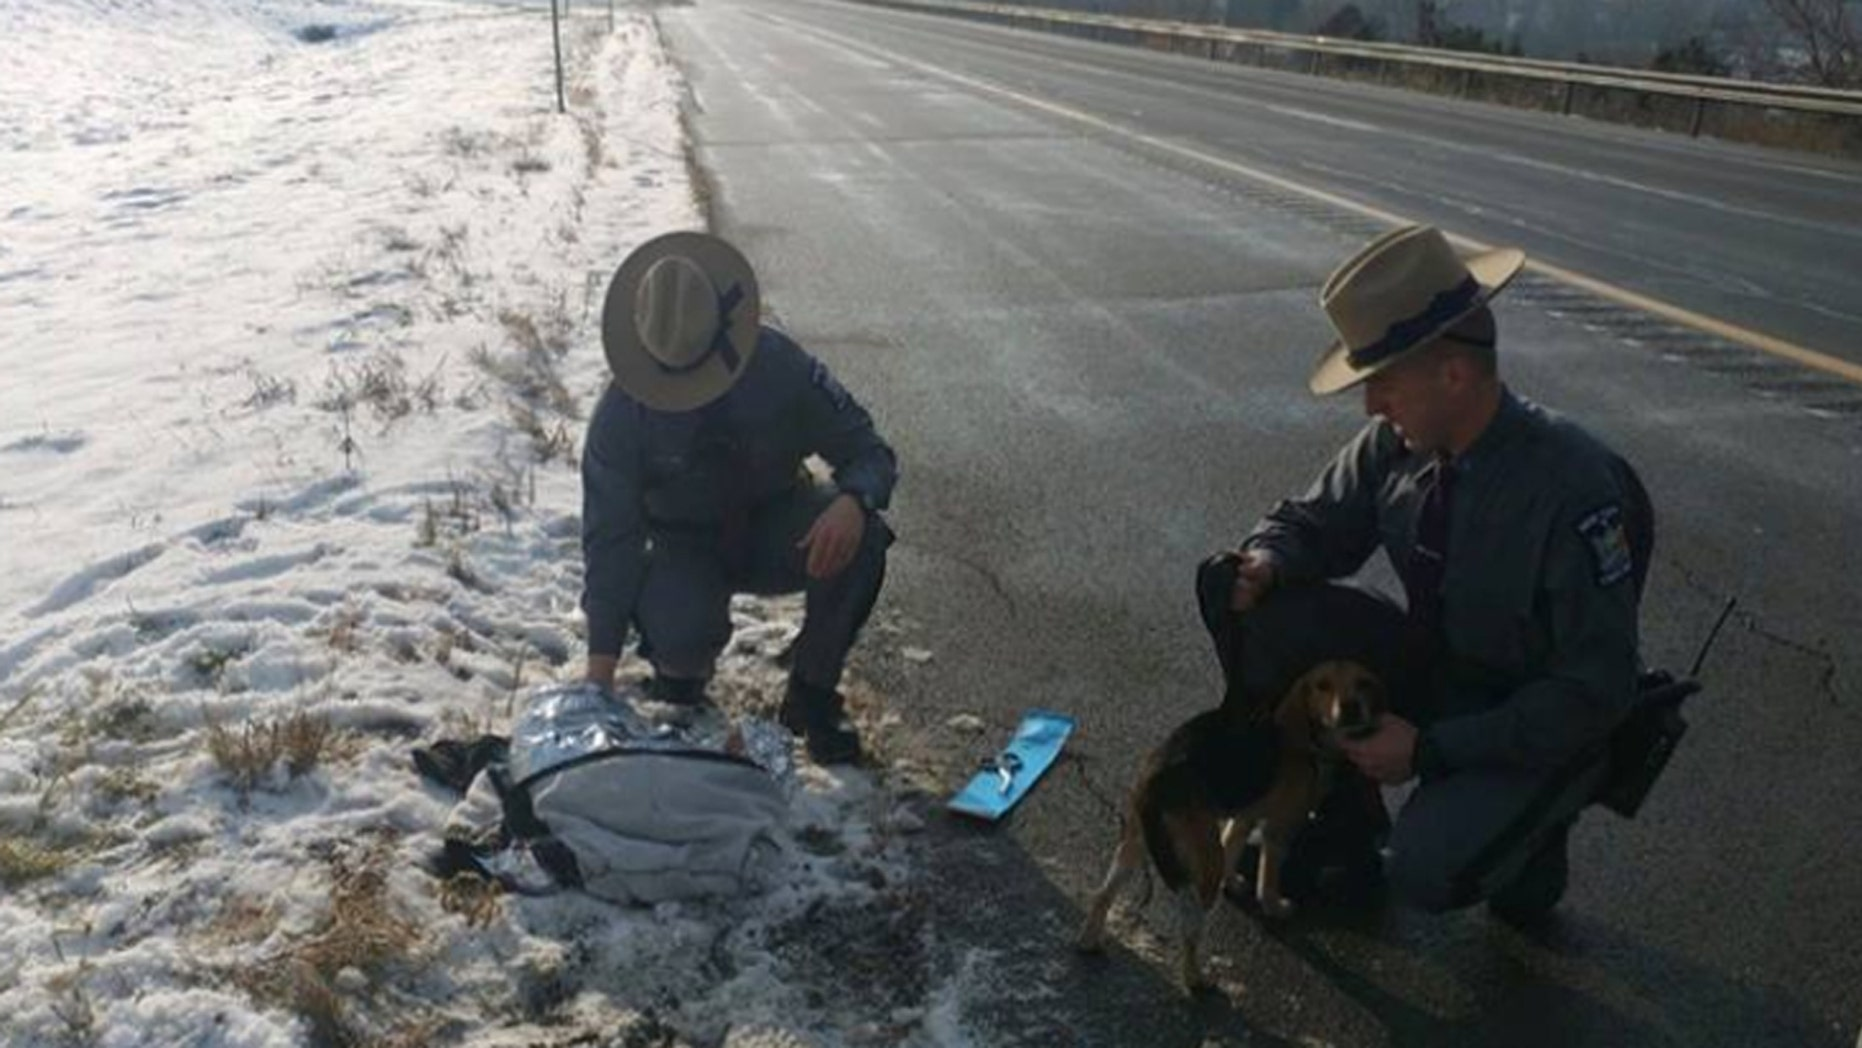 Two beagles were thrown out of an SUV on Interstate 81 in Cortland County on Wednesday.